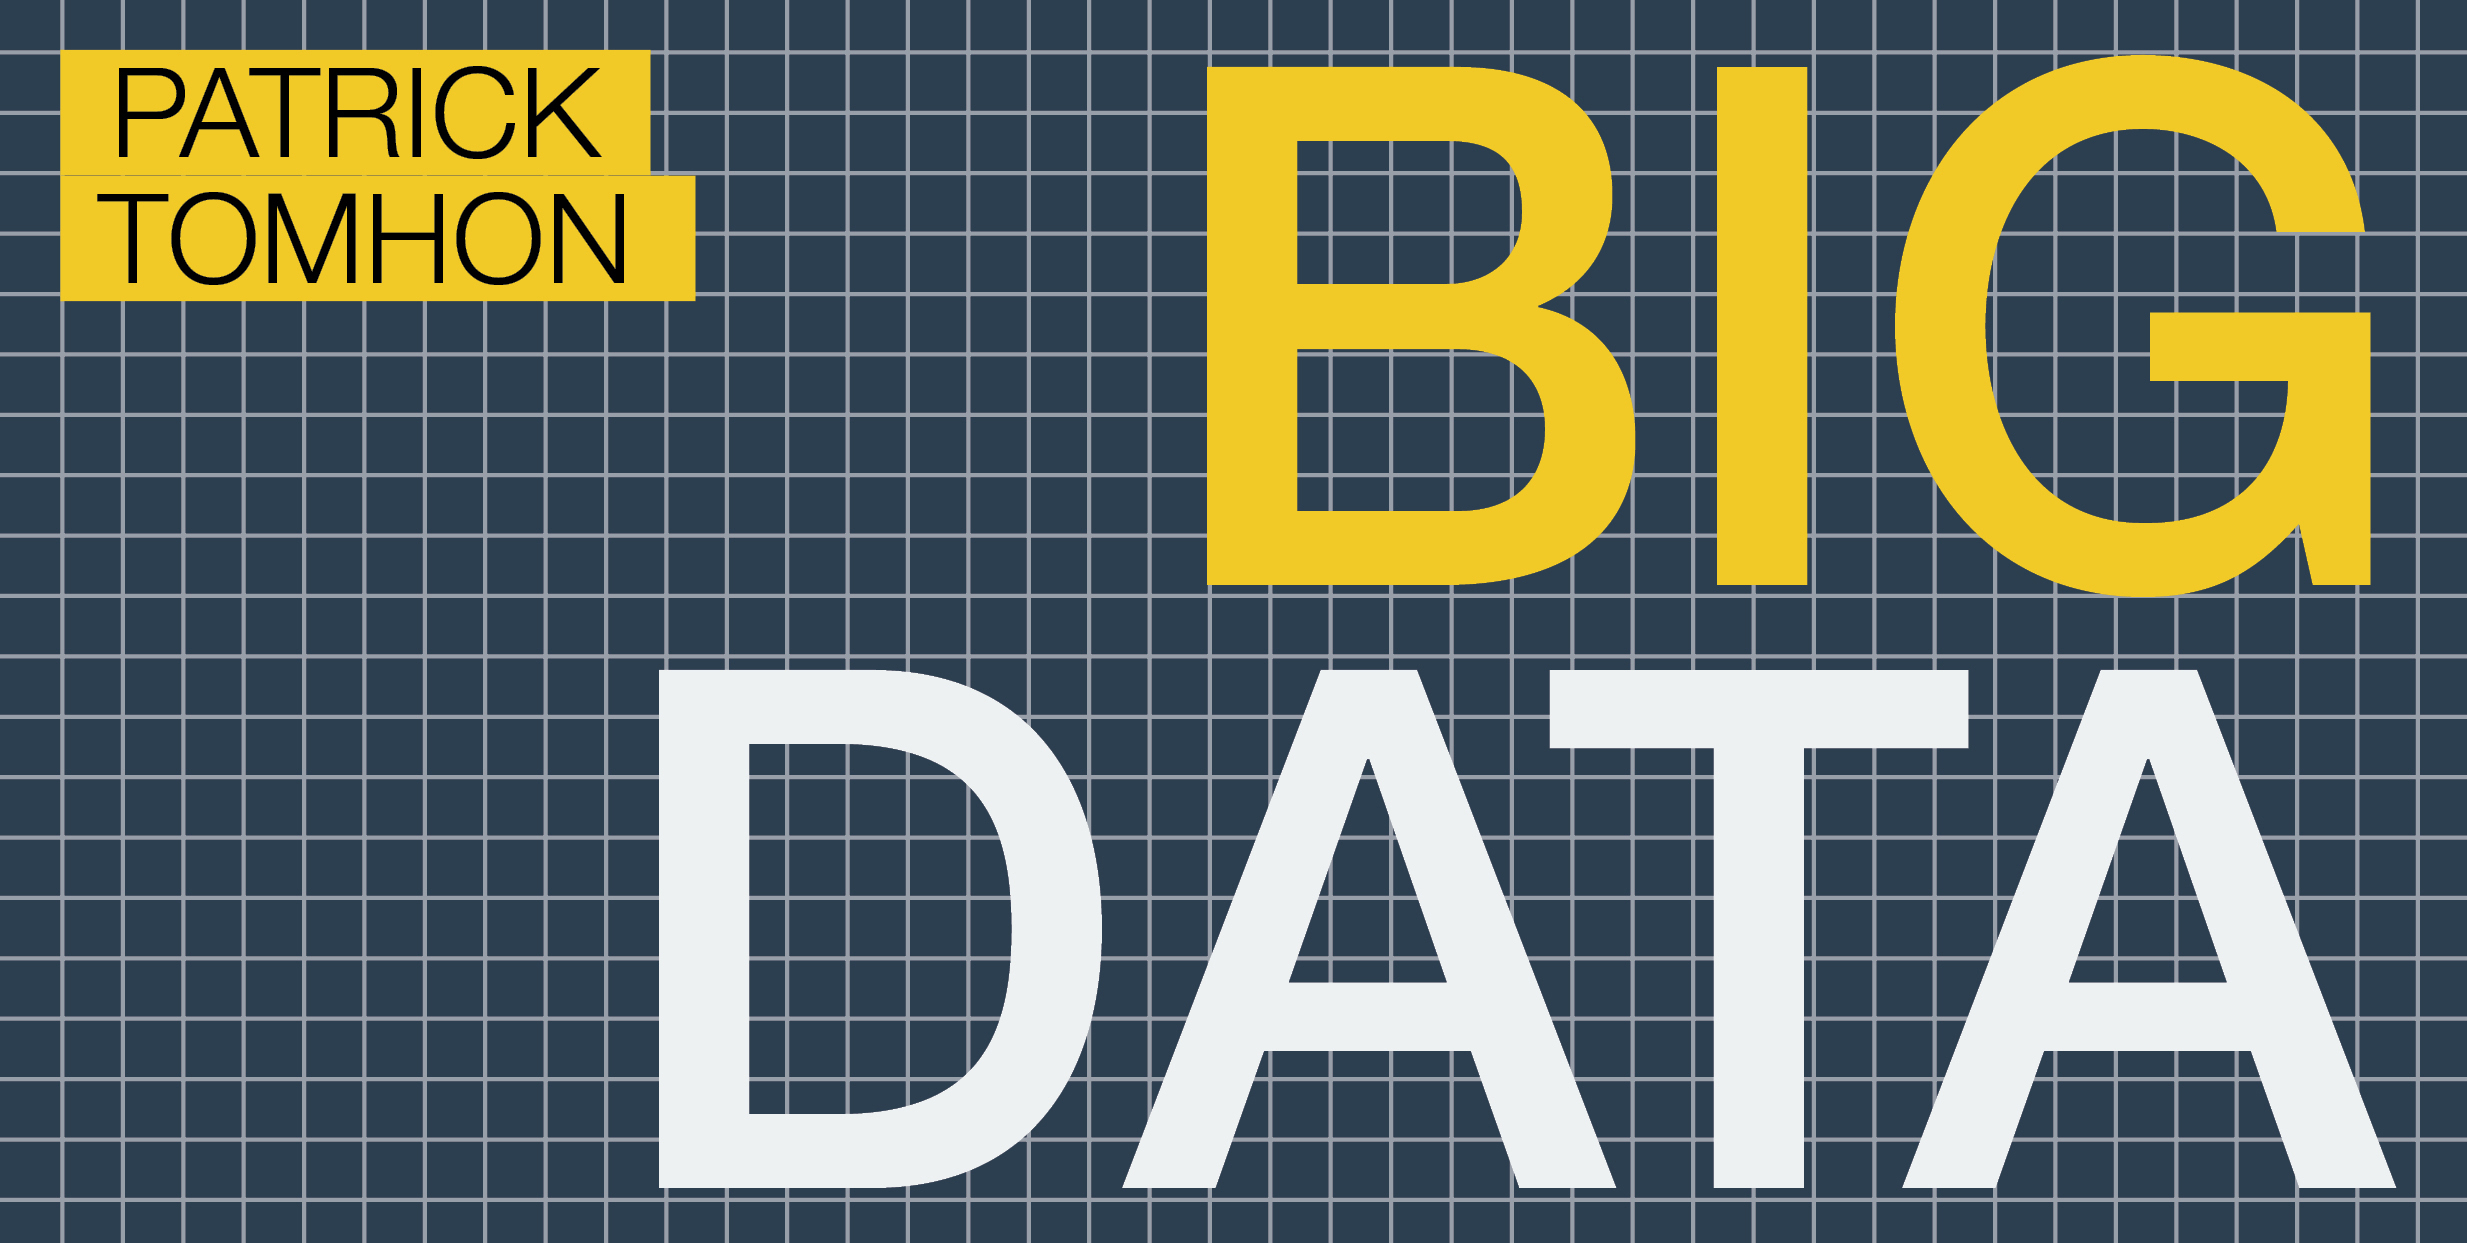 big data cover2.jpg